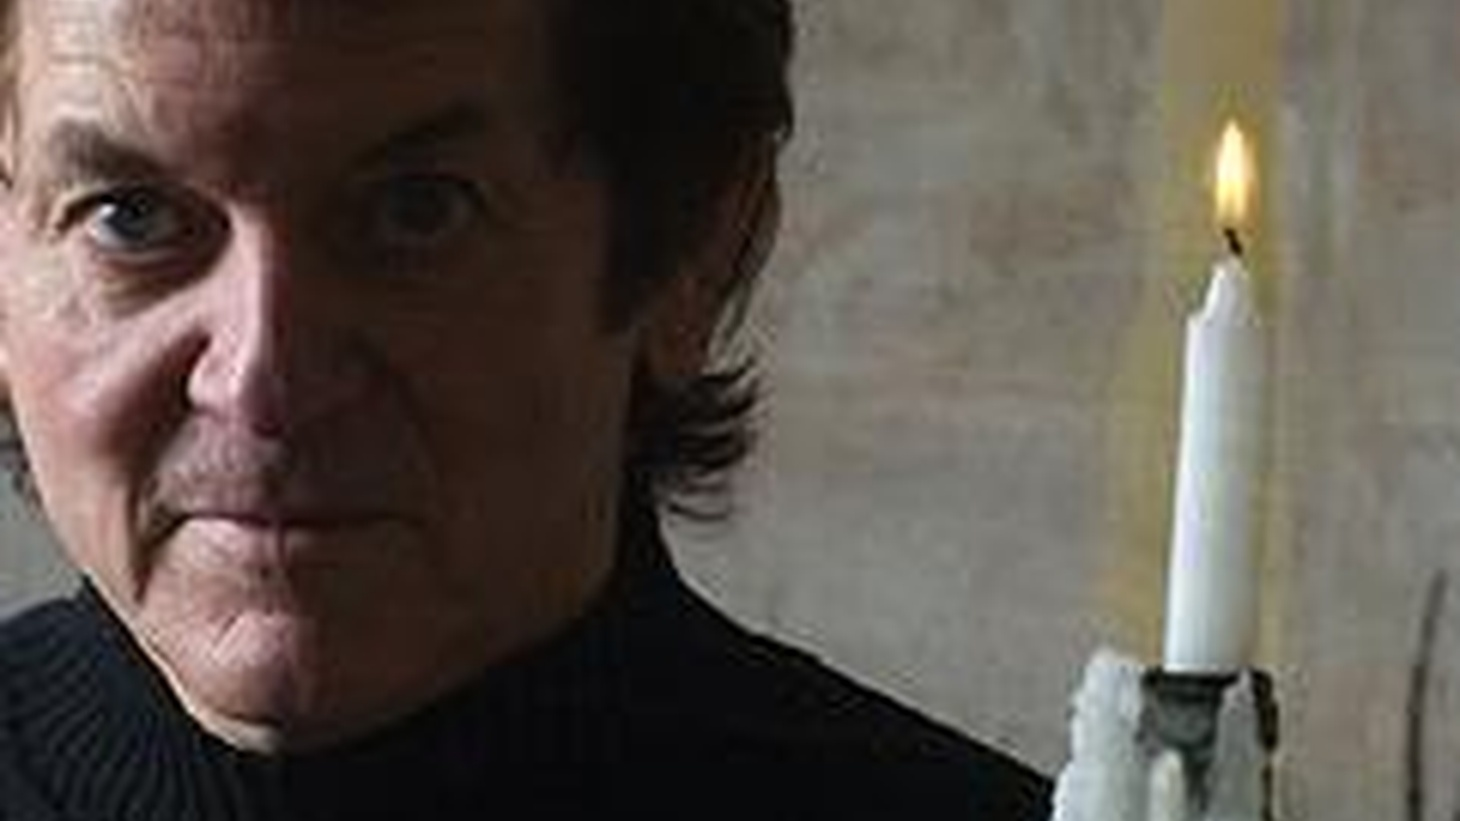 Rodney Crowell is a pioneer of the new traditionalist movement. Best known for his songwriting, Crowell's confessional style is widely covered by artists as diverse as Emmylou Harris and Andy Williams...